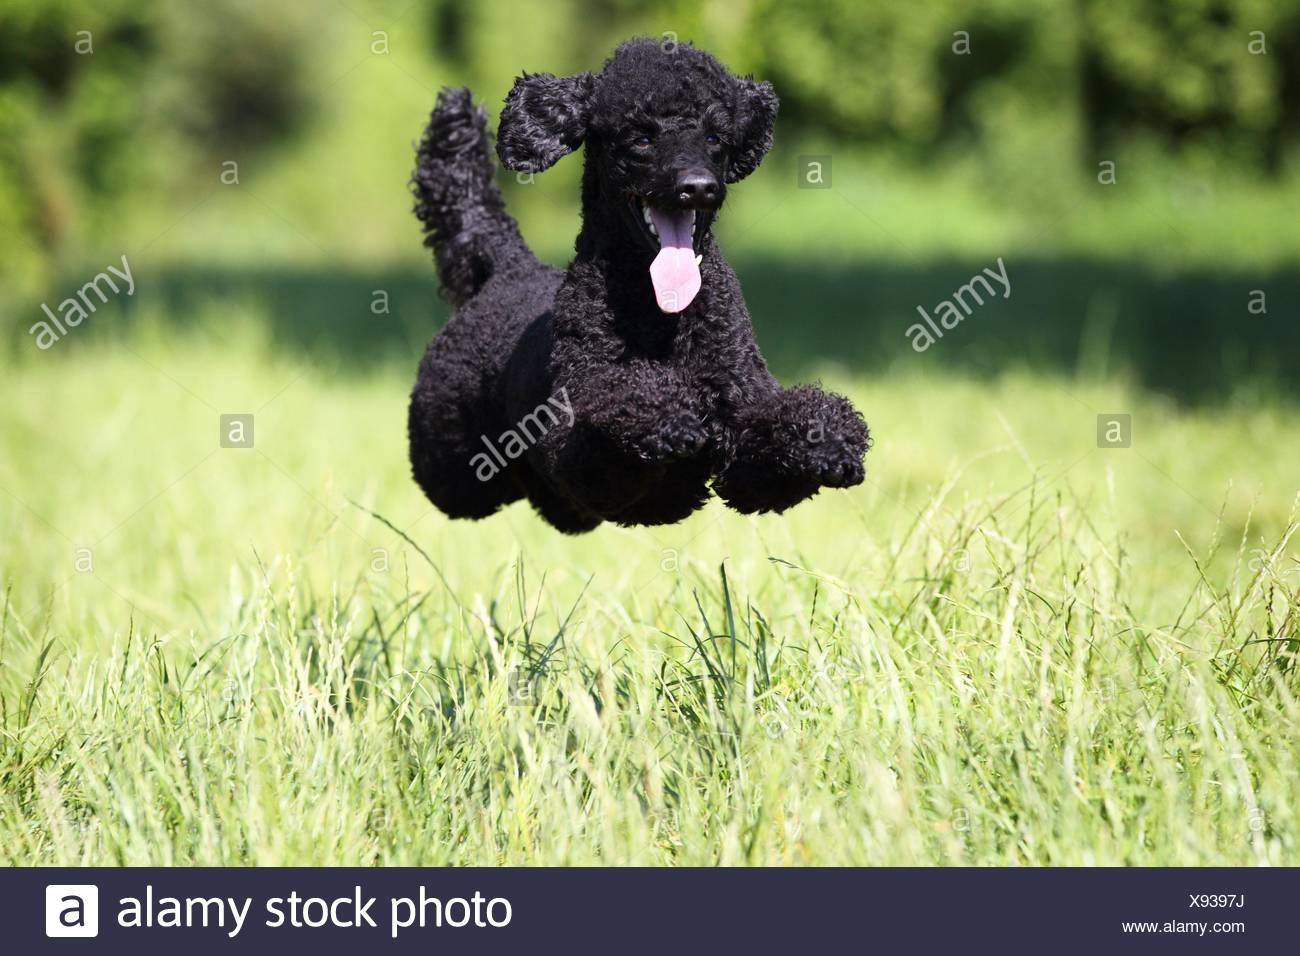 jumping Miniature Poodle - Stock Image